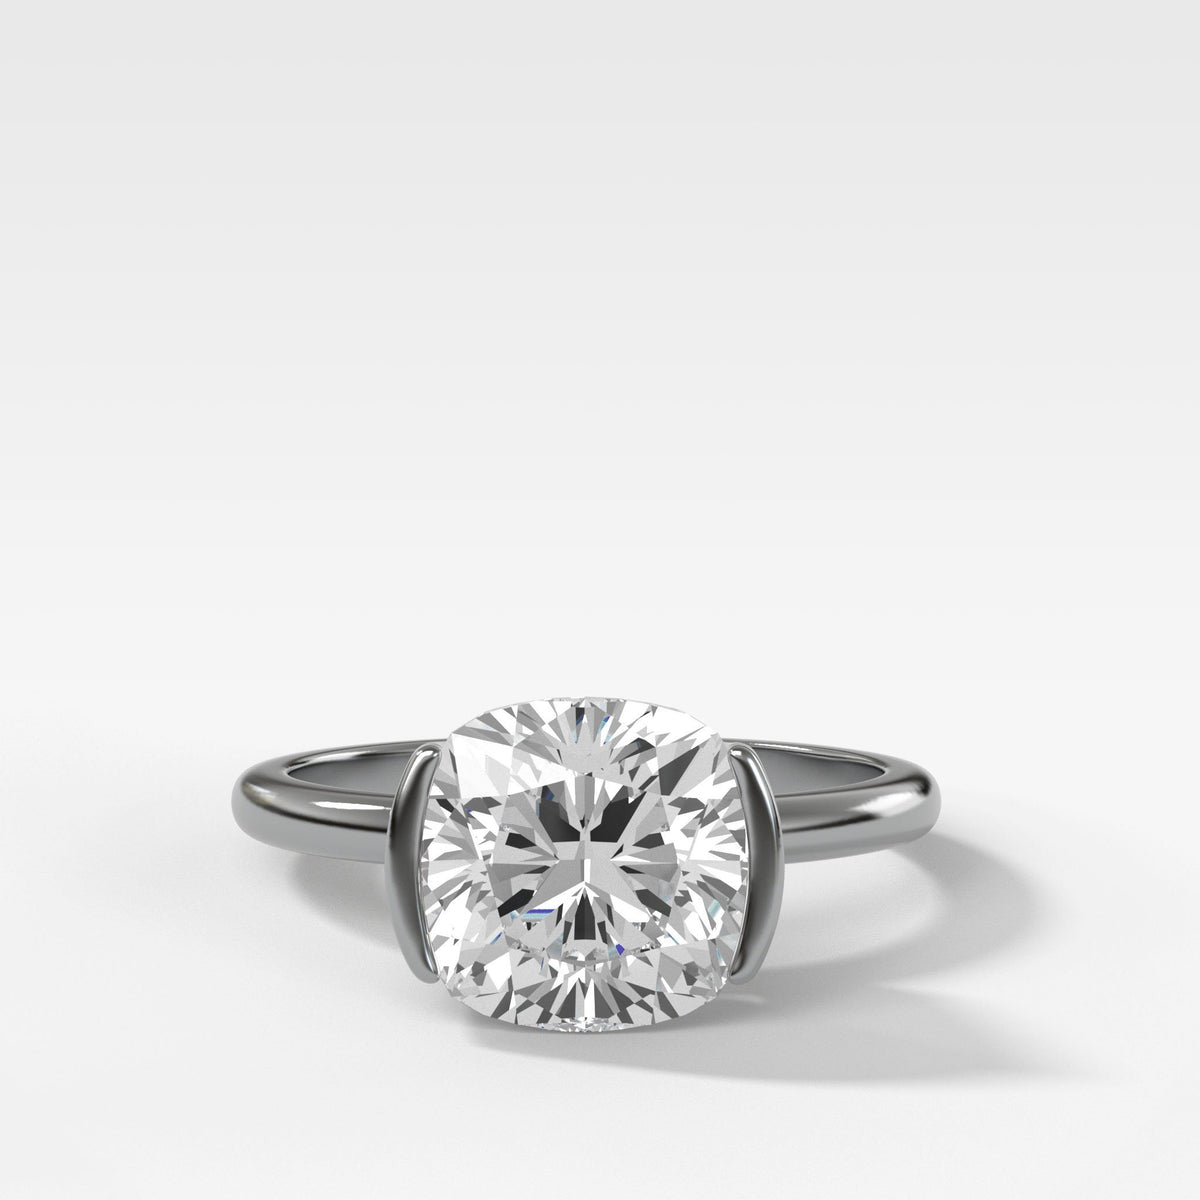 Half Bezel Solitaire Engagement Ring With Cushion Cut in White Gold by Good Stone